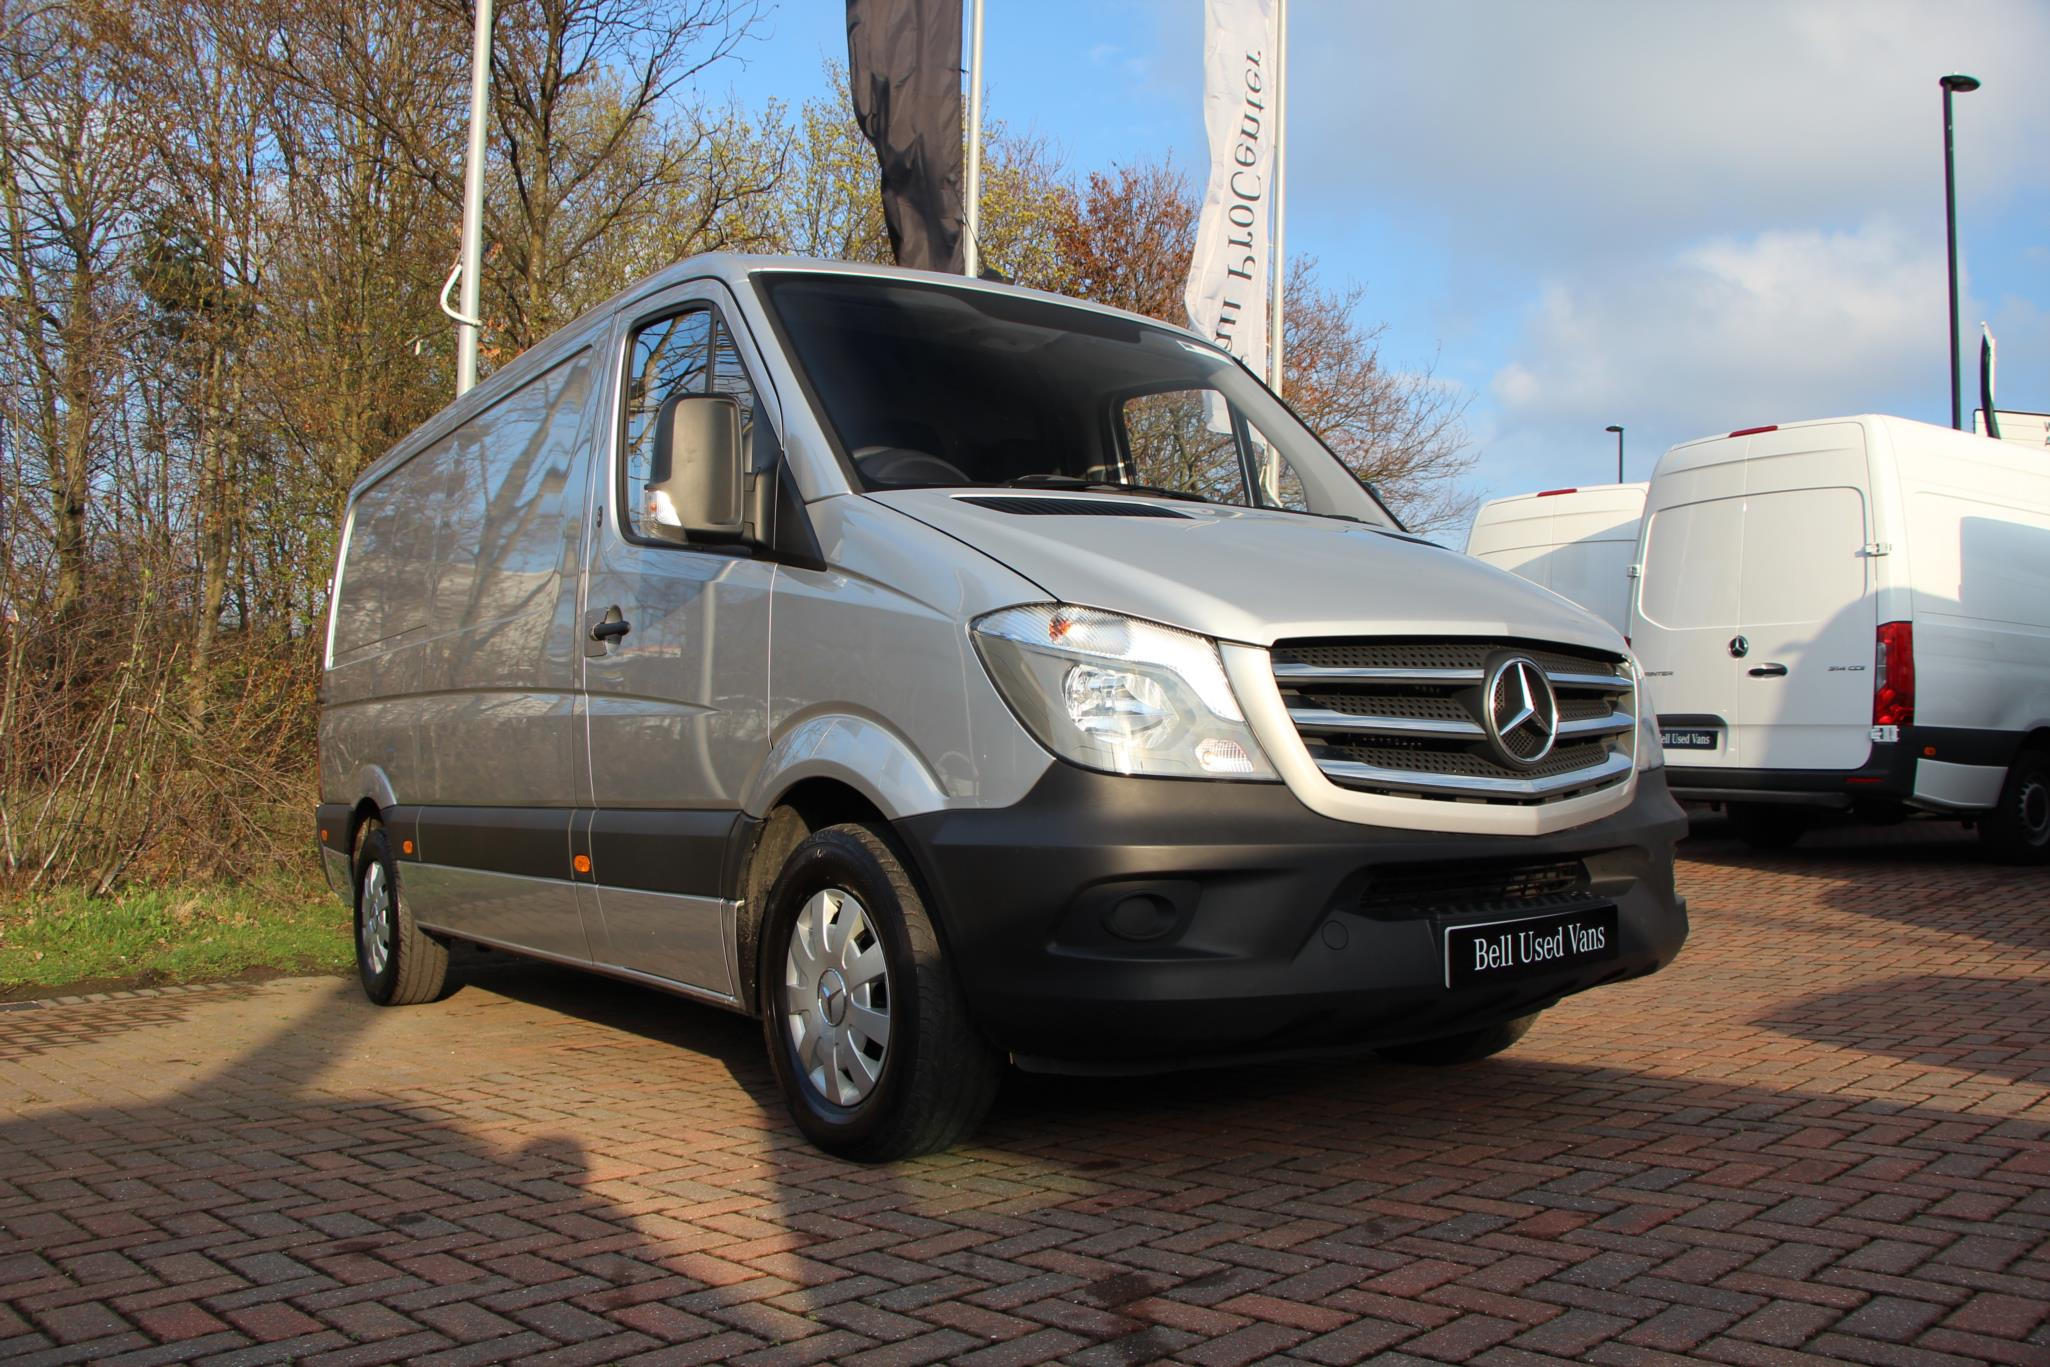 1f4b2e6f3f Mercedes-Benz Sprinter 314CDI Van Image 1. Low finance available